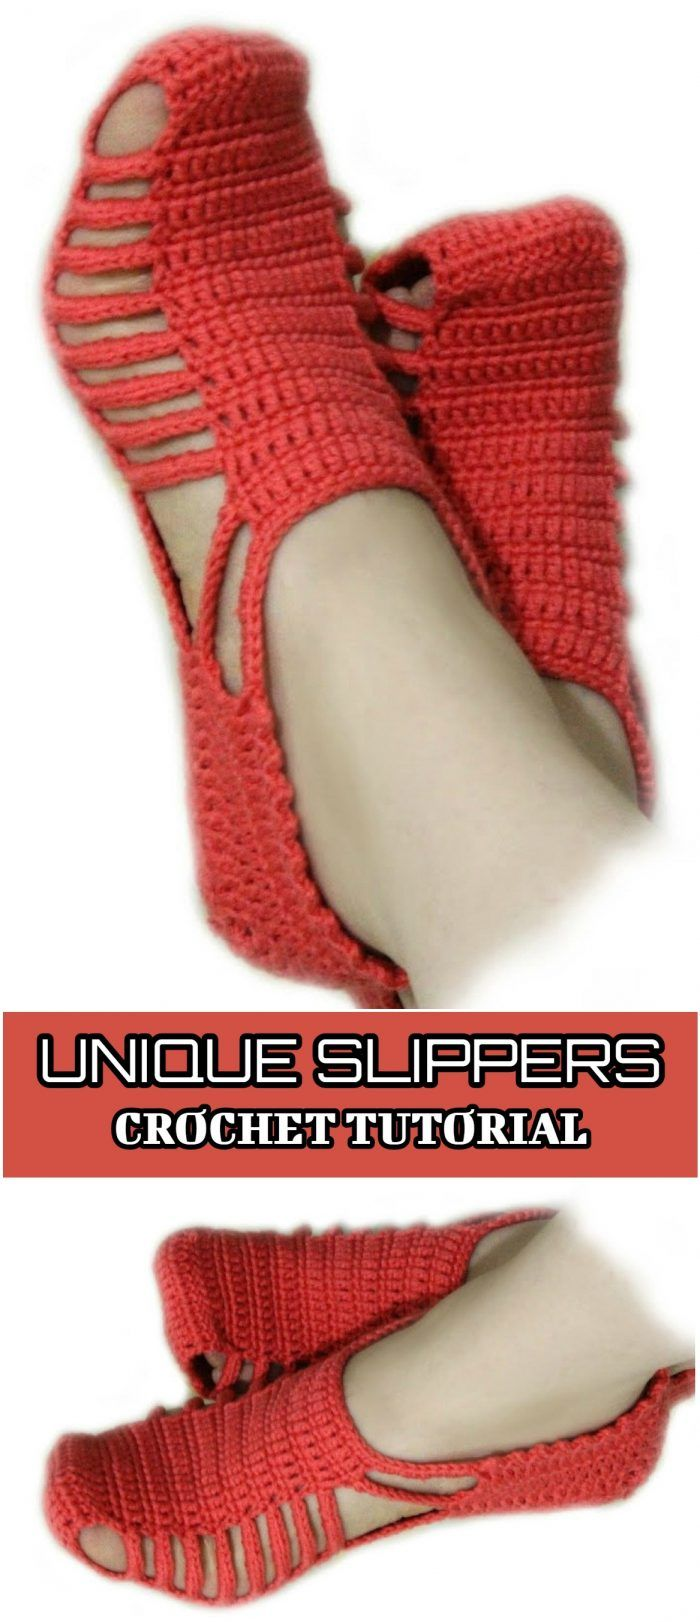 Unique Slippers Crochet Tutorial Slippers And Baby Booties